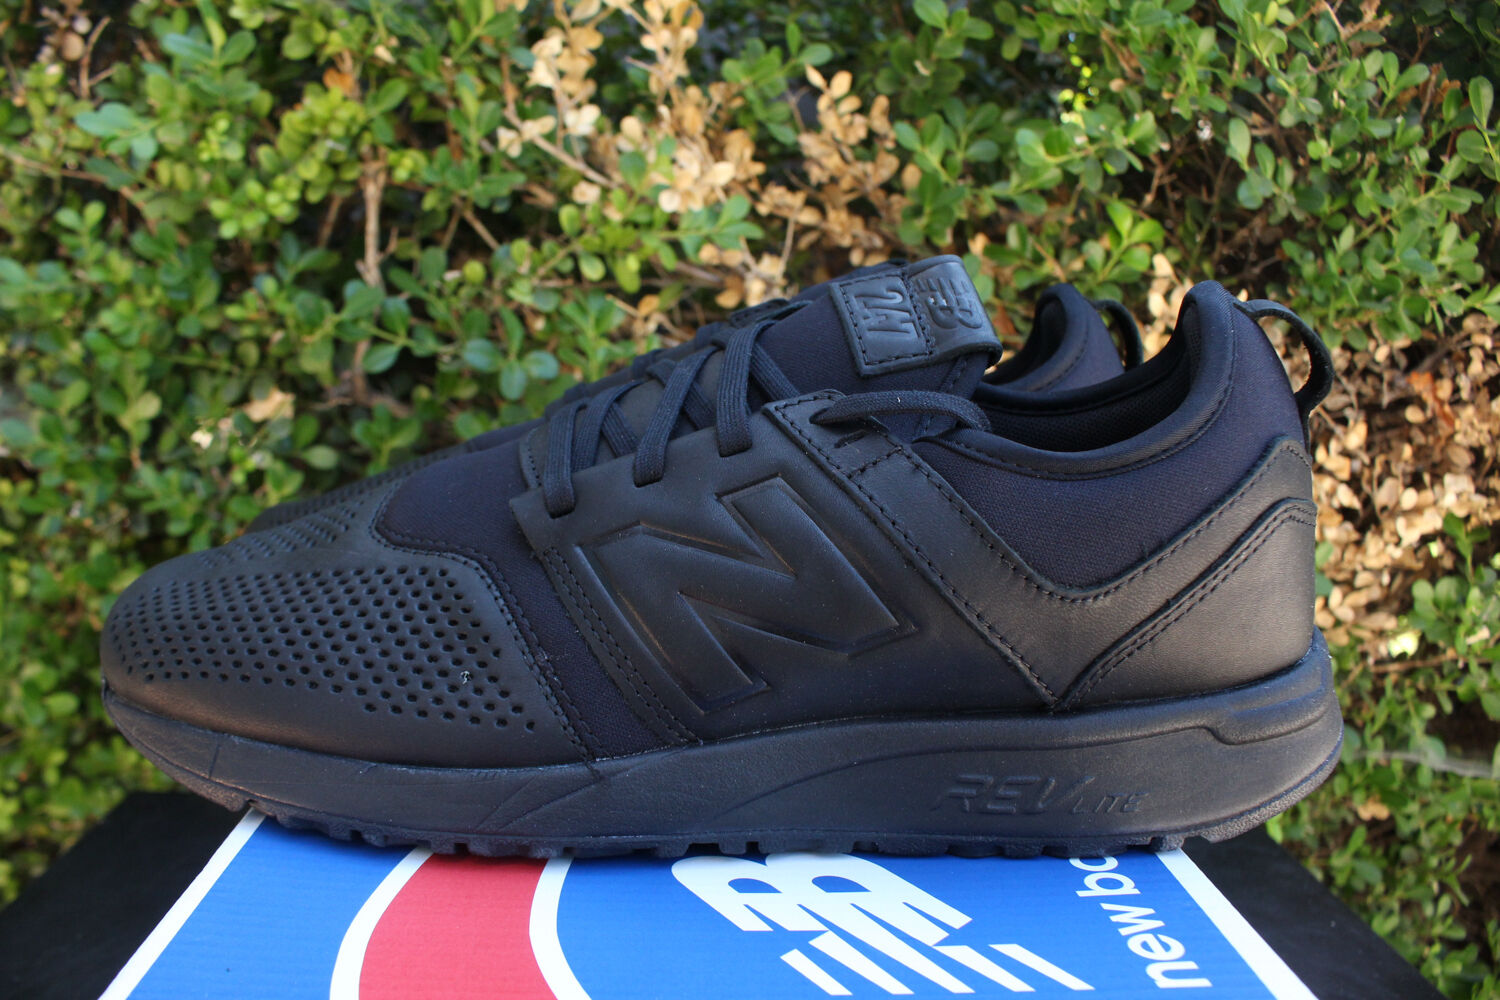 NEW BALANCE 247 SZ 11.5 TRIPLE BLACK LEATHER RUNNING SHOE MRL247LK